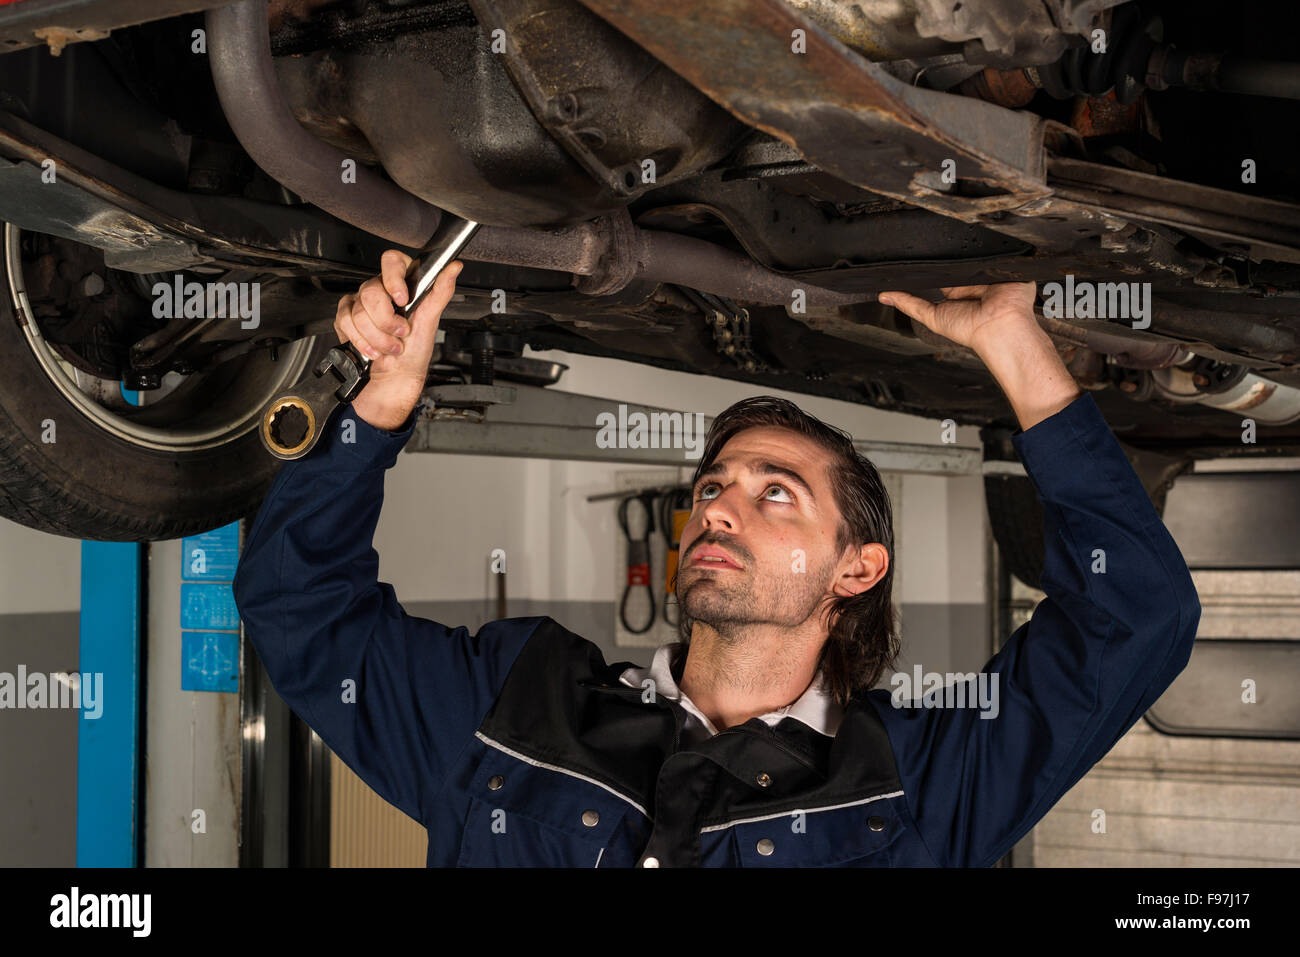 Auto mechanic portrait - Stock Image